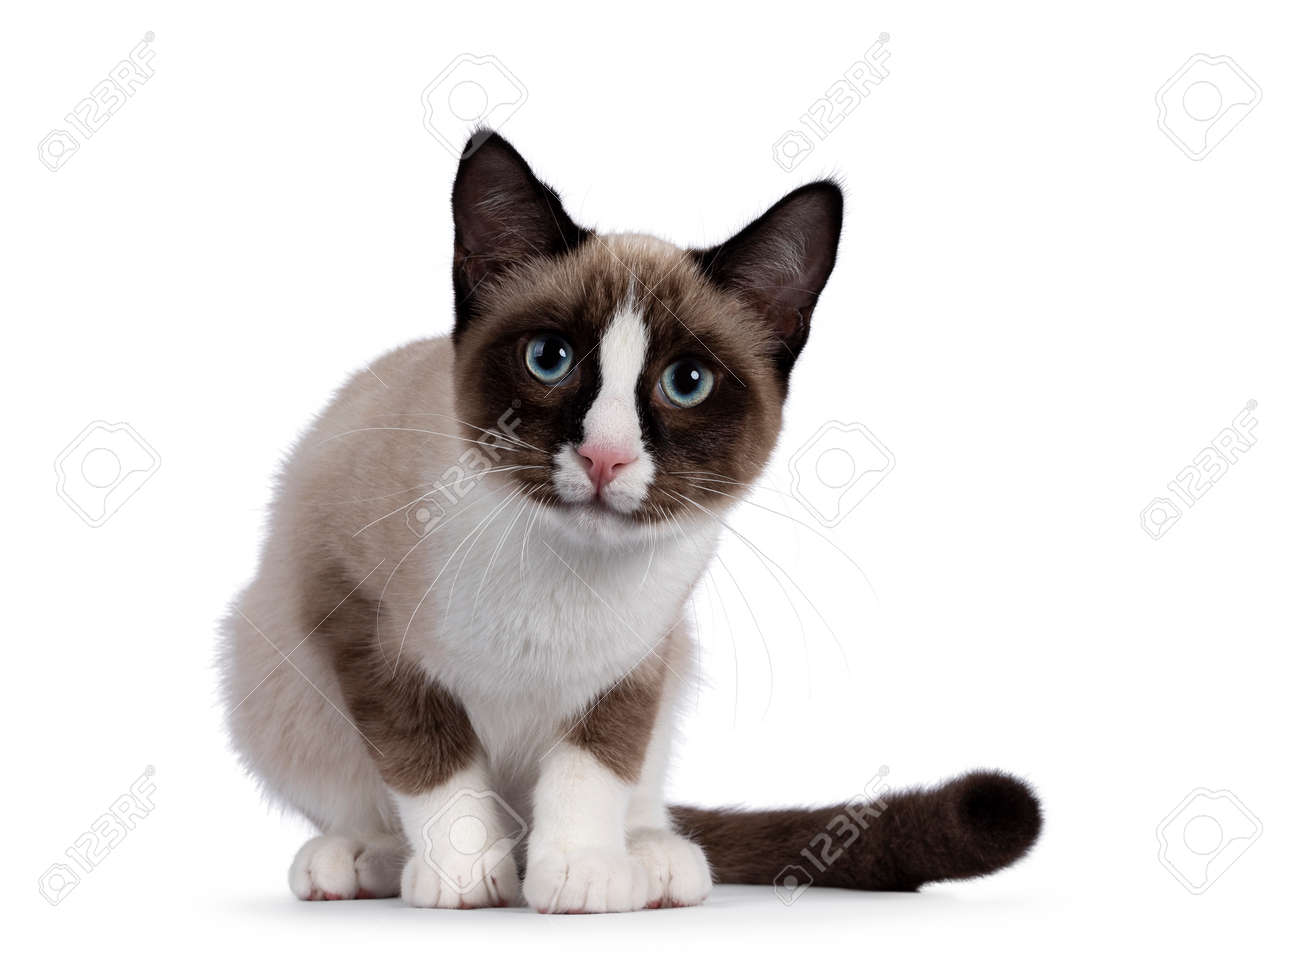 Adorable young Snowshoe cat kitten, sitting front view. Looking curious towards camera with the typical blue eyes. Isolated on a white background. - 173357261